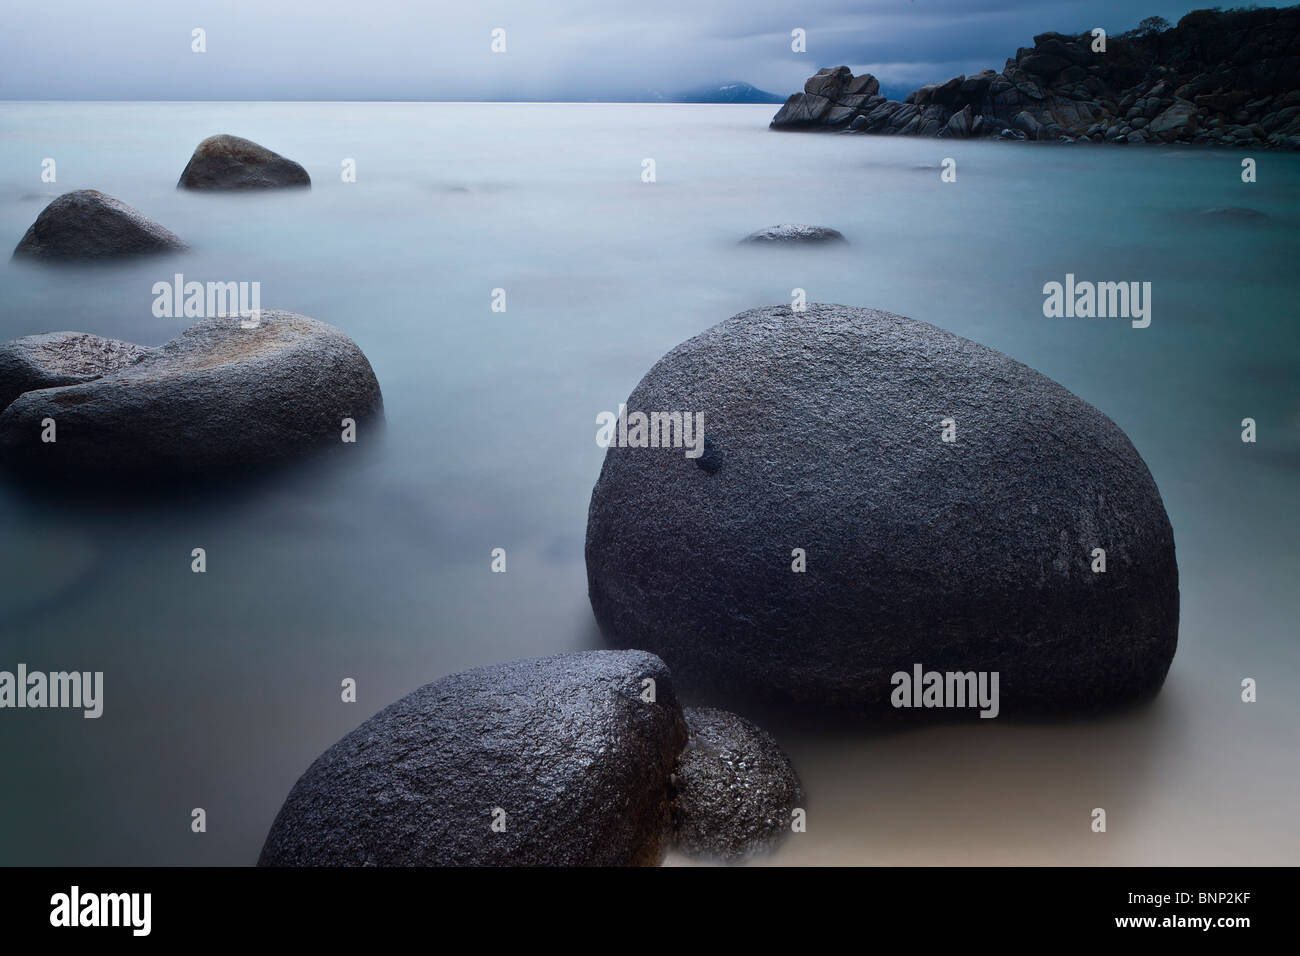 Boulders and still water at Hidden Beach, Lake Tahoe, Nevada, USA - Stock Image